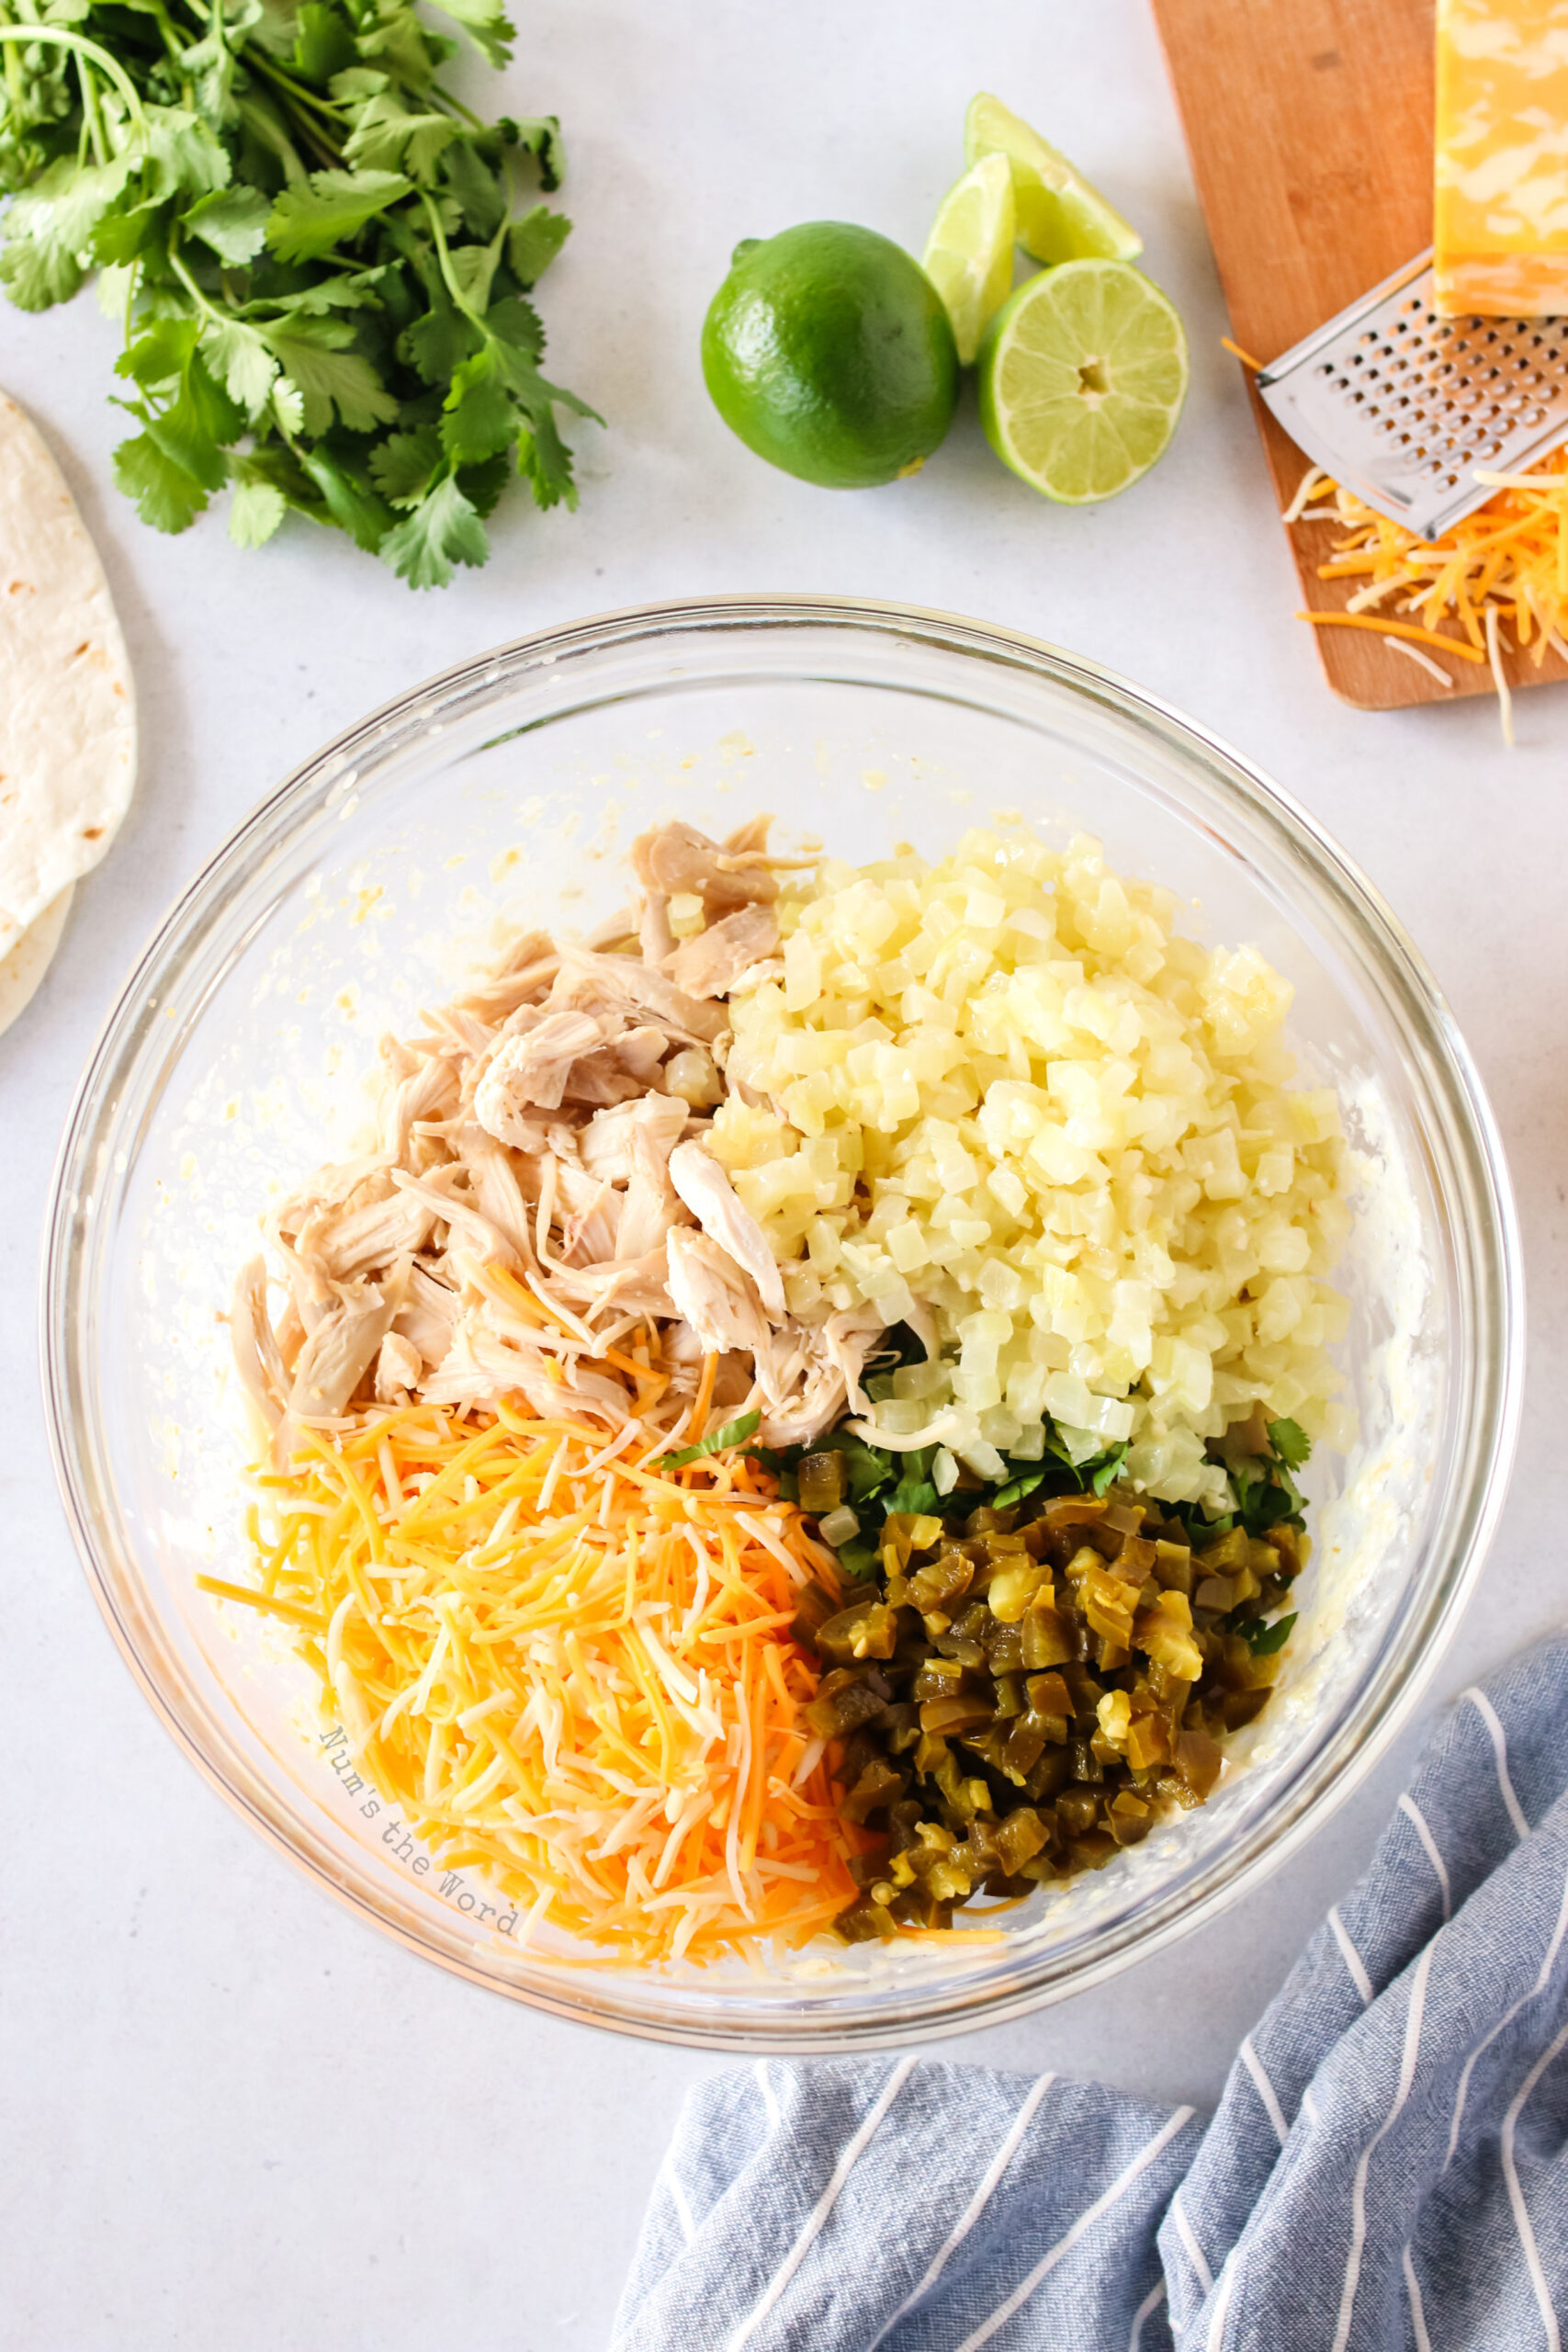 chicken, cheese, cilantro, onion and jalapeno peppers added to blended cream cheese mixture. Unmixed.